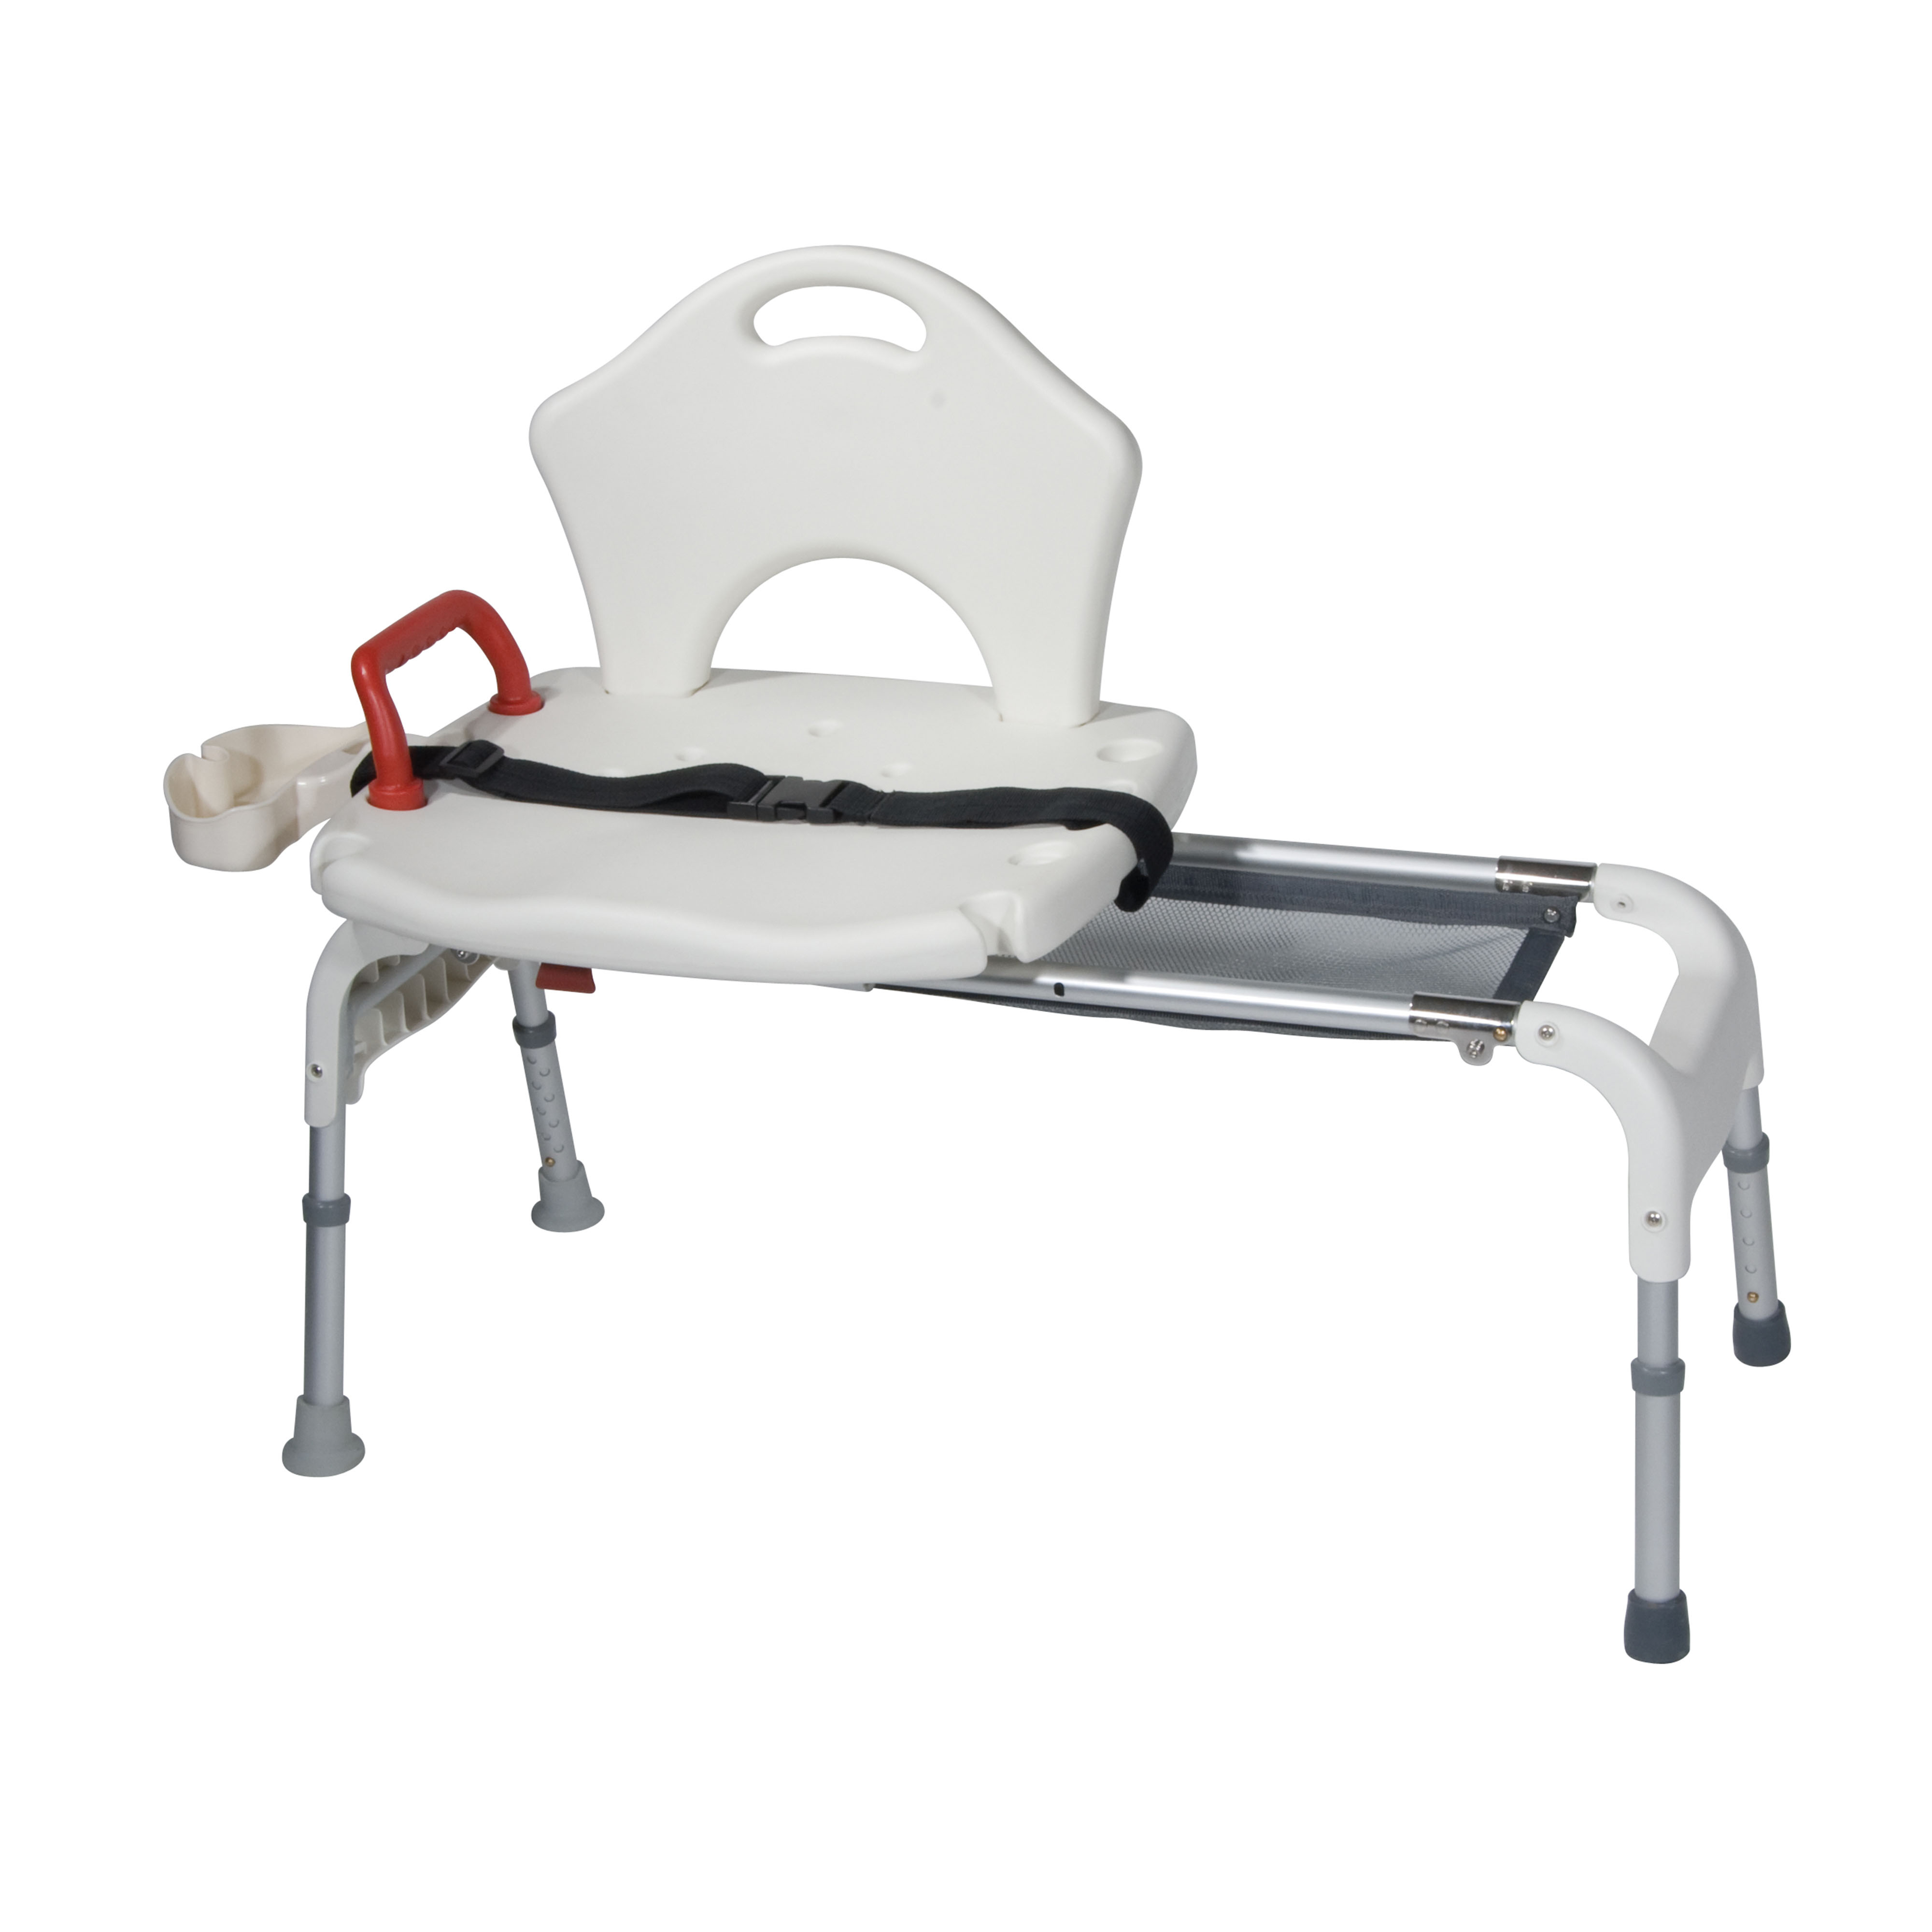 Drive Medical Folding Universal Sliding Transfer Bench - Walmart.com